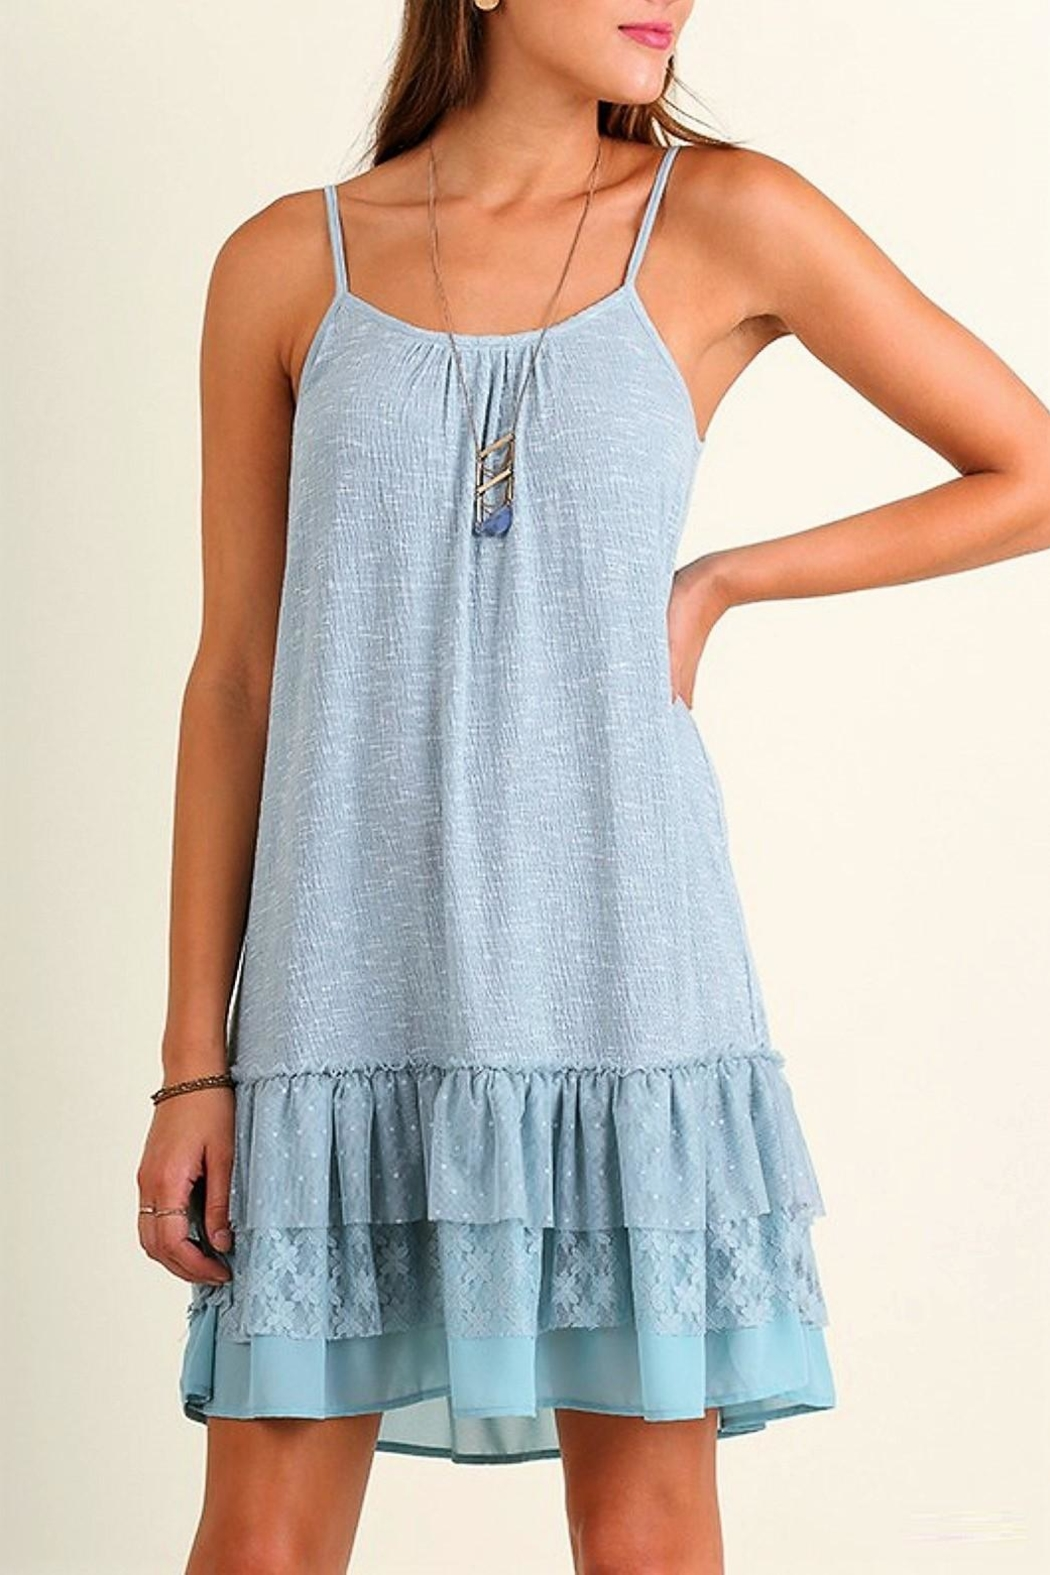 People Outfitter Sun Up Dress - Main Image